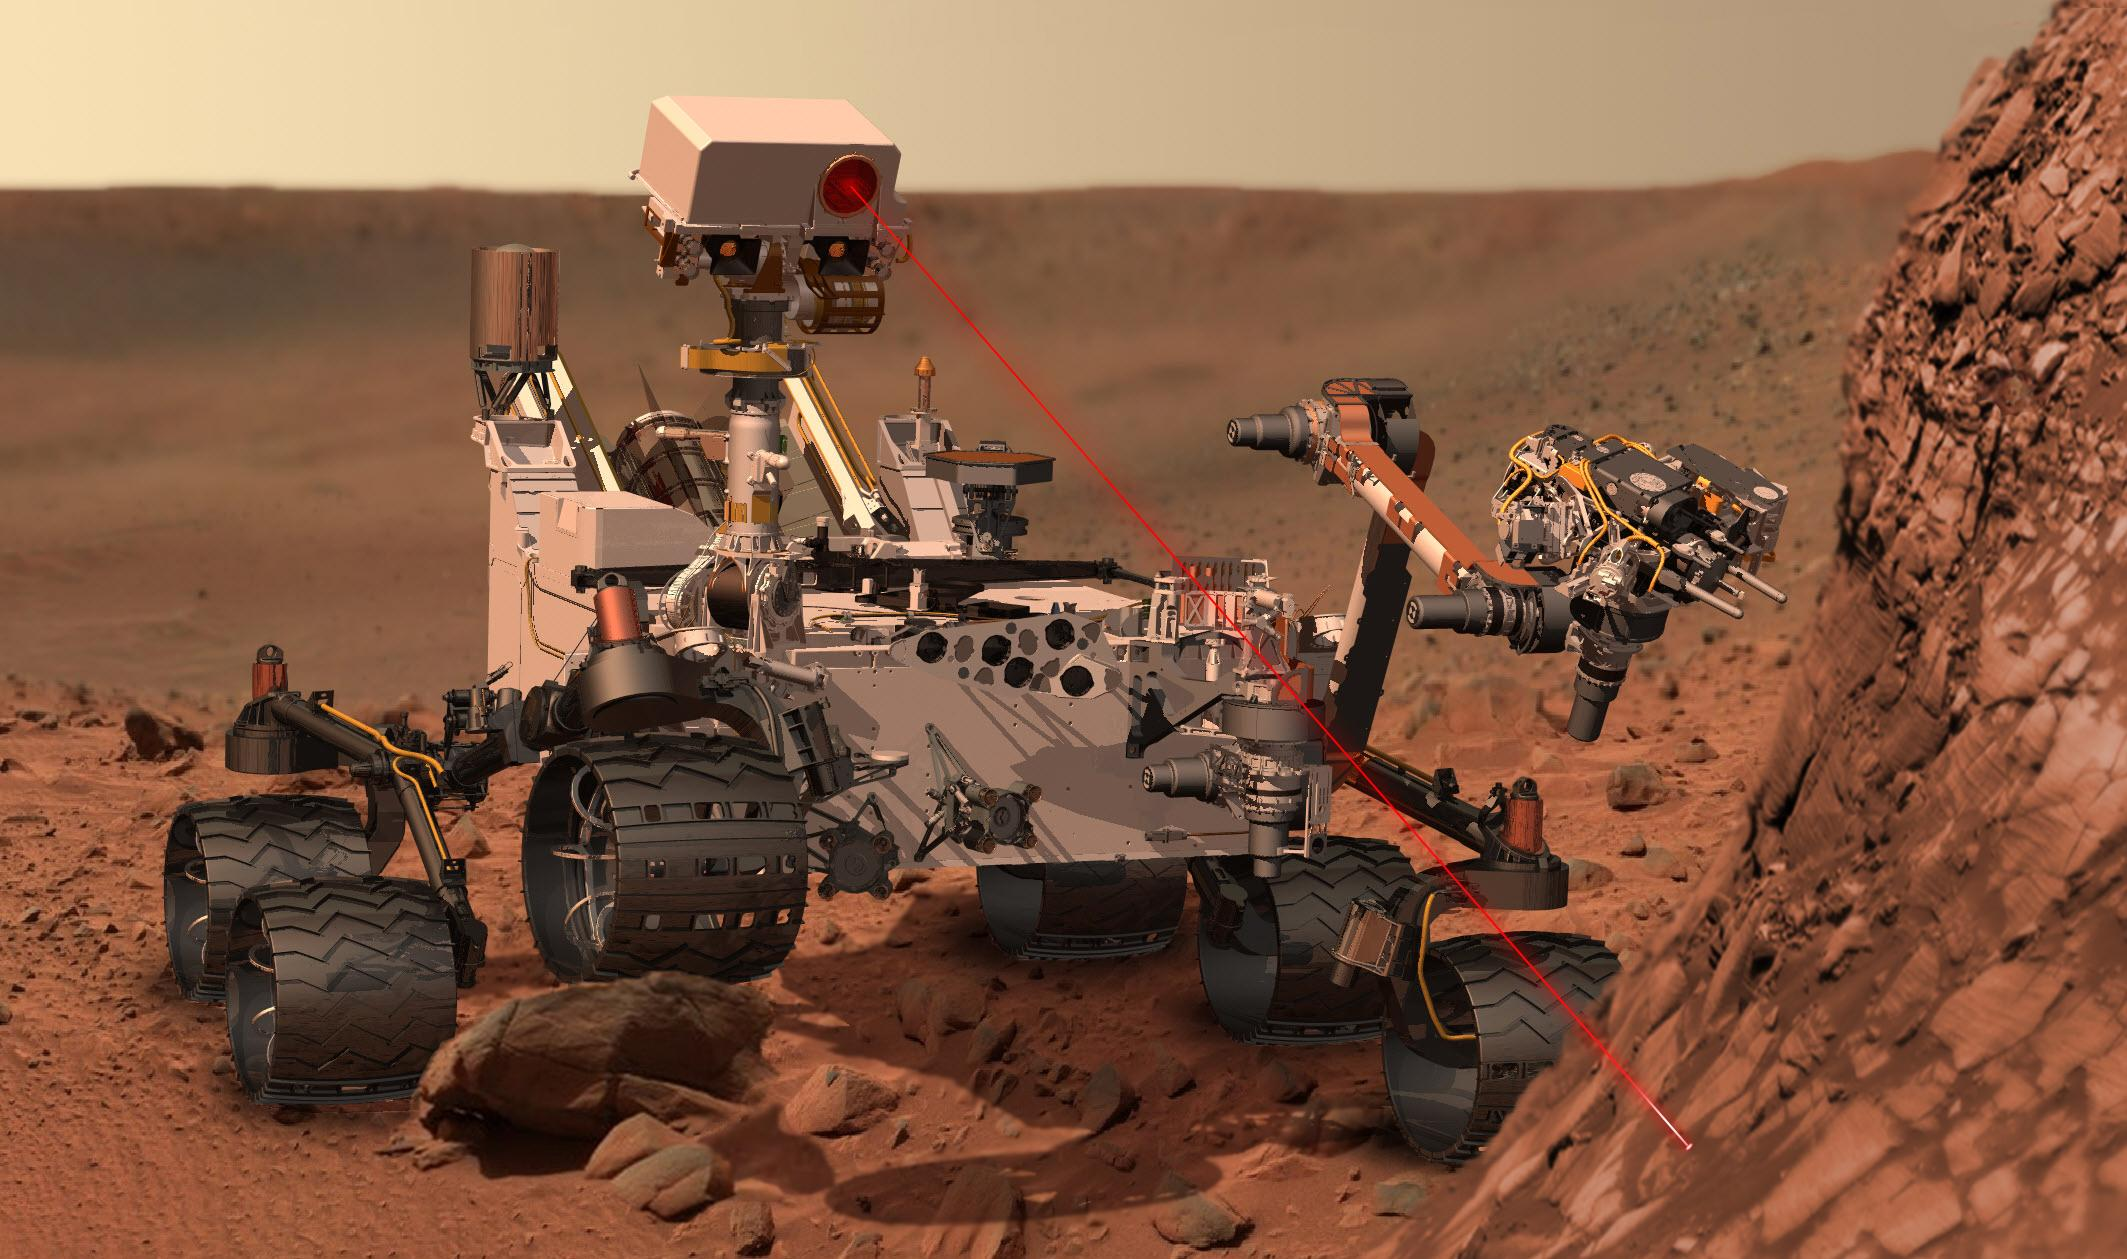 mars rover images - HD 2127×1259